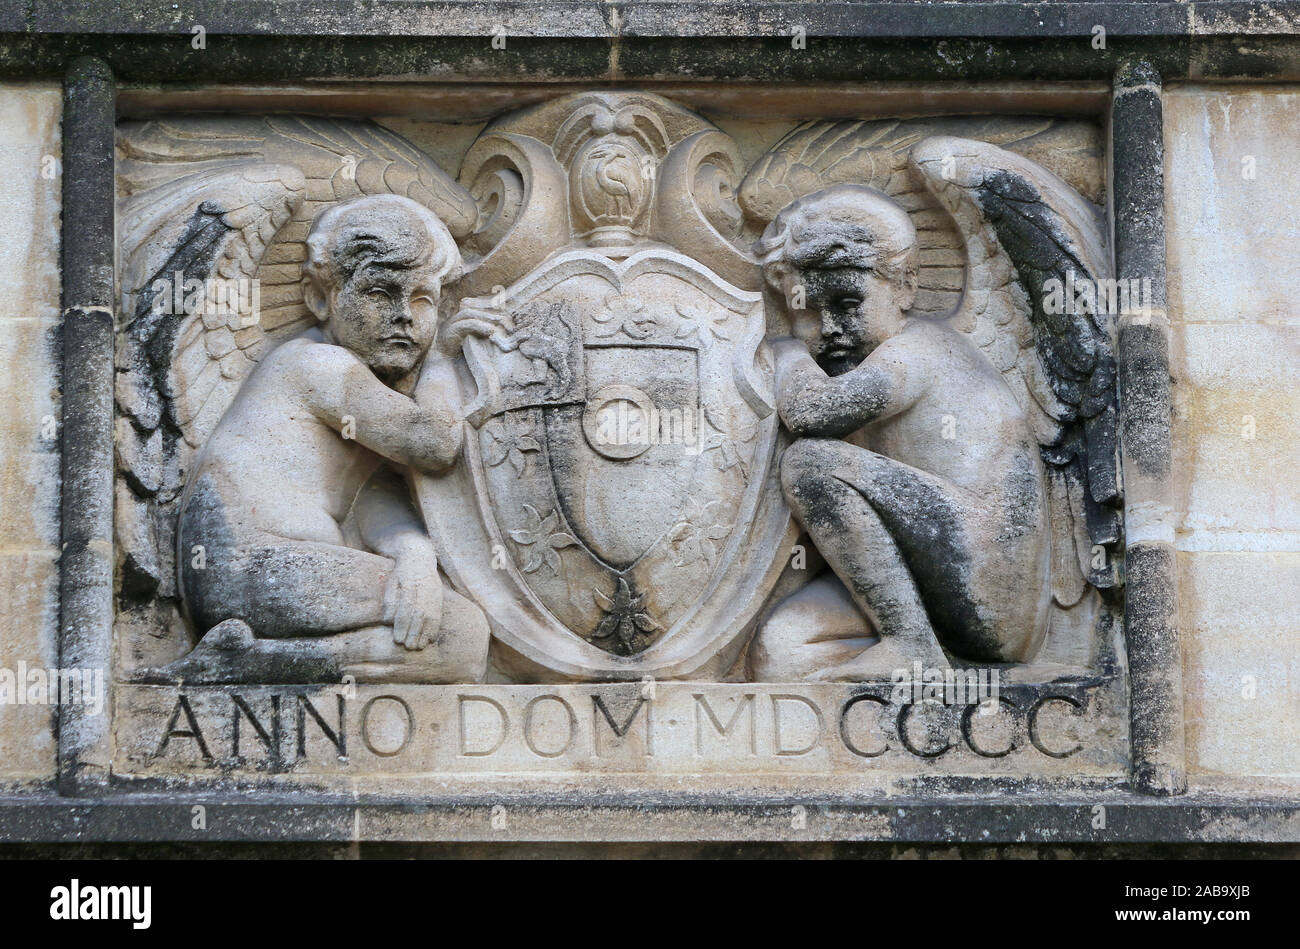 stone carving on a wall in St John's college Oxford part of the university showing two angels or cherubs and the coat of arms of the college from 1900 Stock Photo